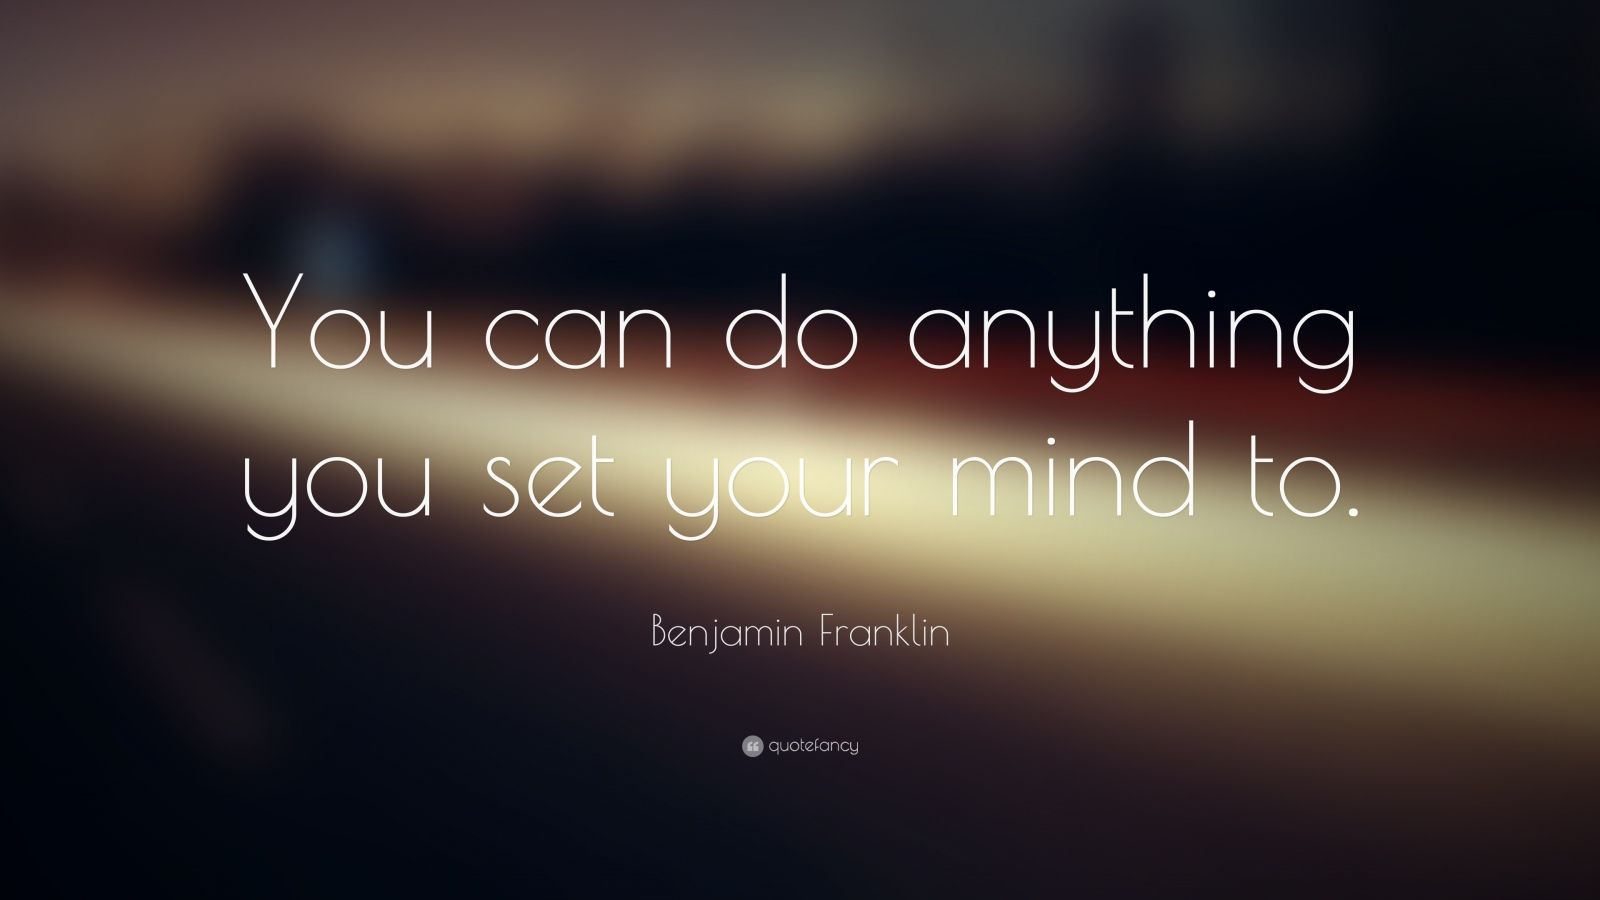 Business Inspirational Quotes Wallpaper Download Benjamin Franklin Quote You Can Do Anything You Set Your